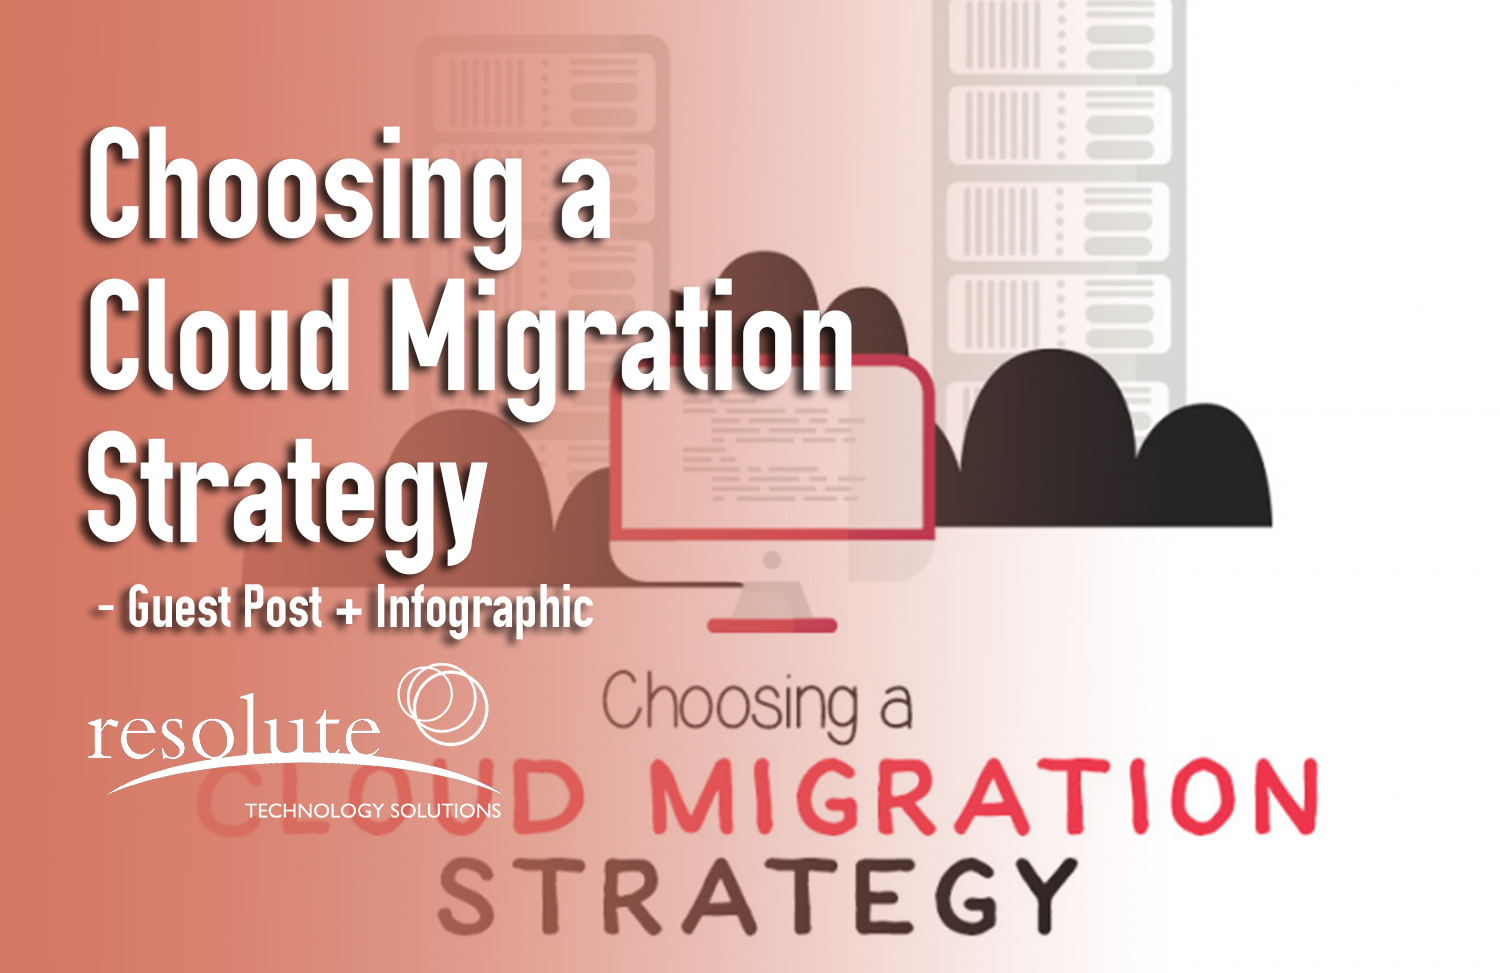 Choosing a Cloud Migration Strategy (Infographic)